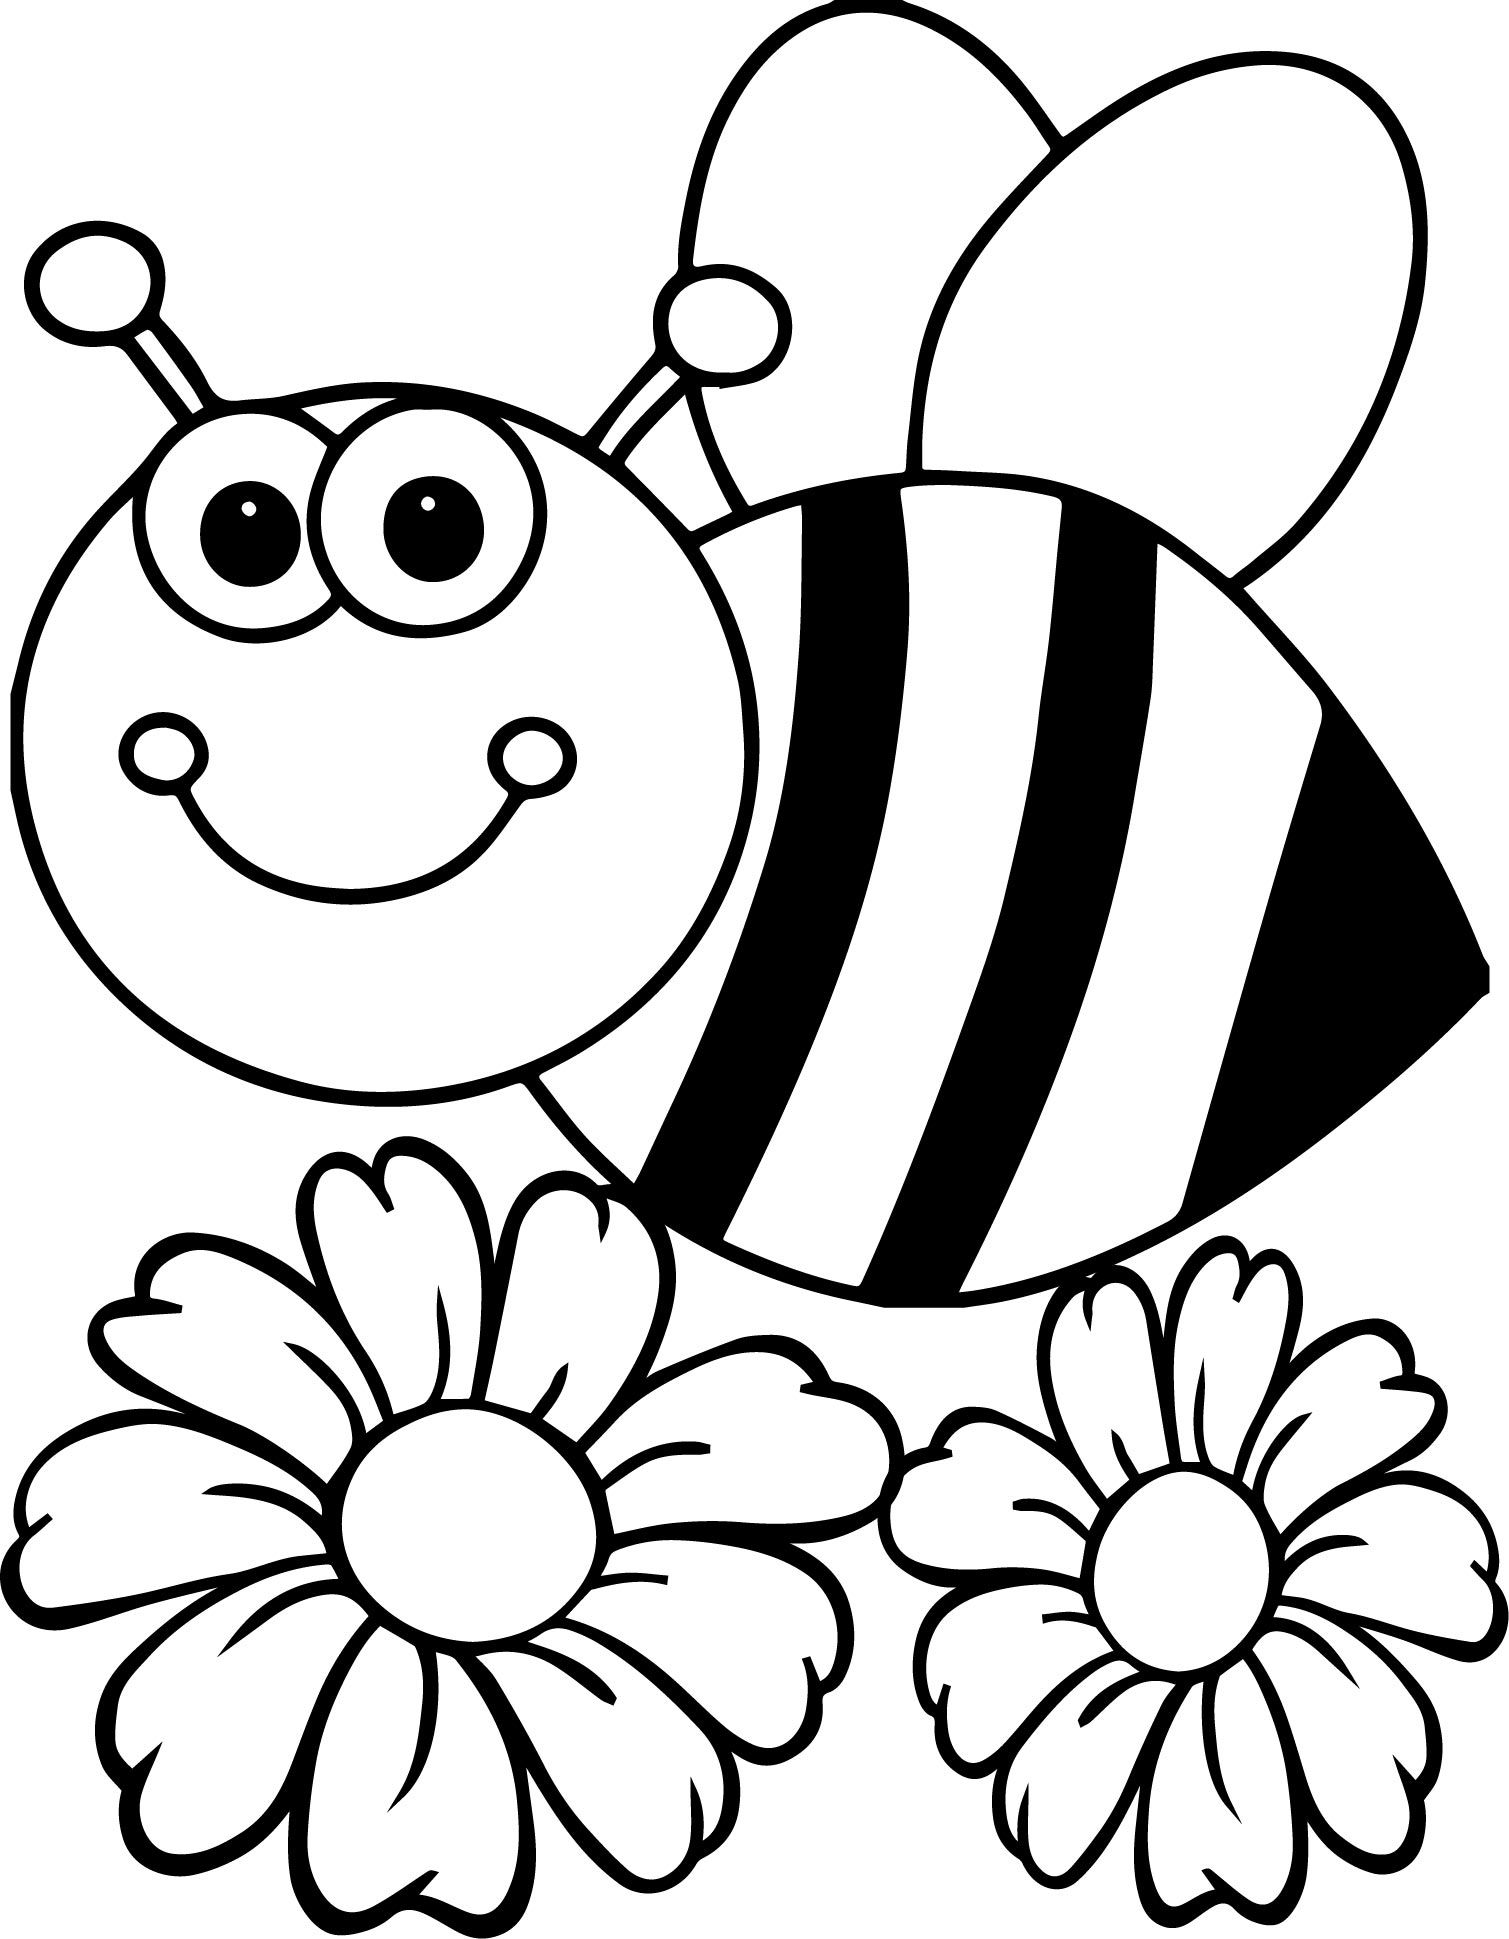 Cool Bee Flower Coloring Page